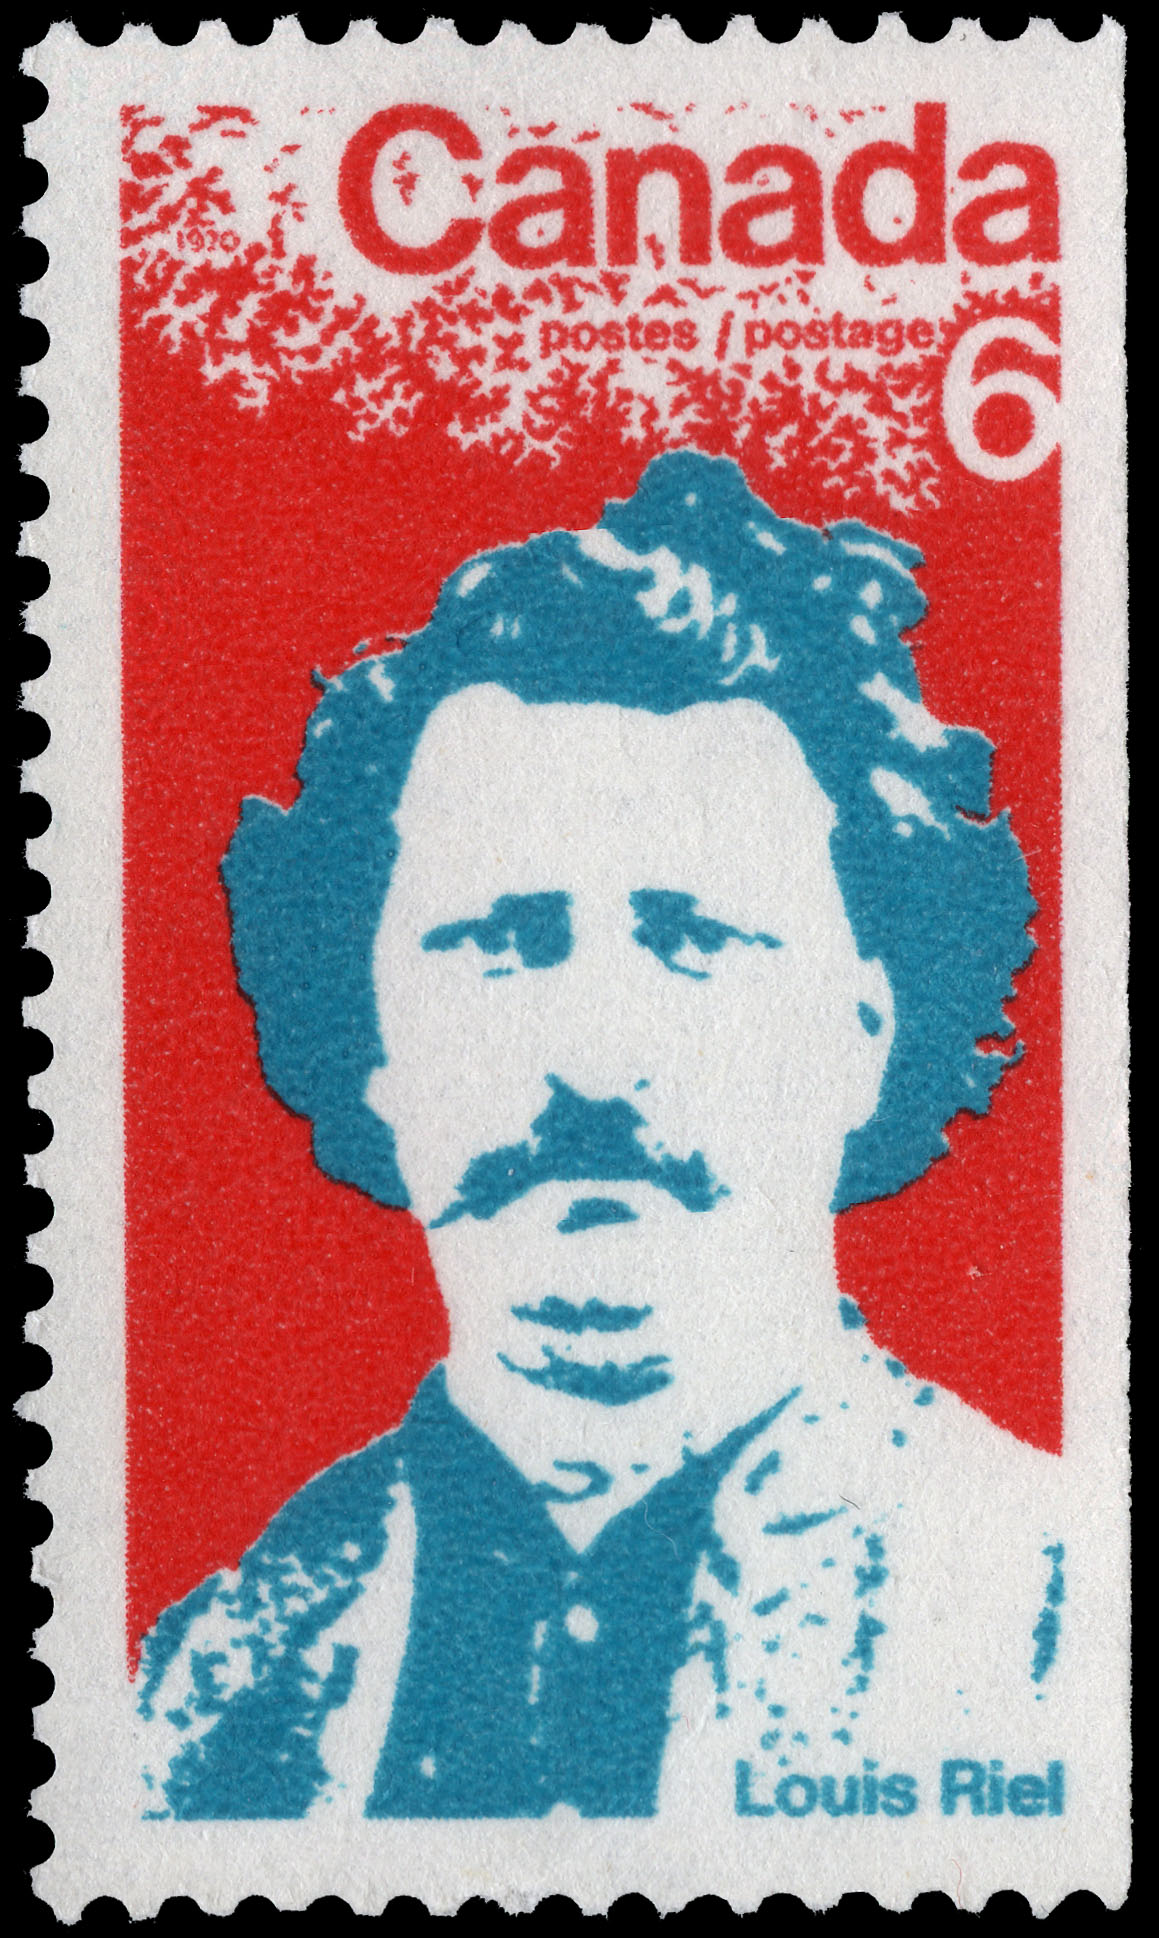 Louis Riel Canada Postage Stamp